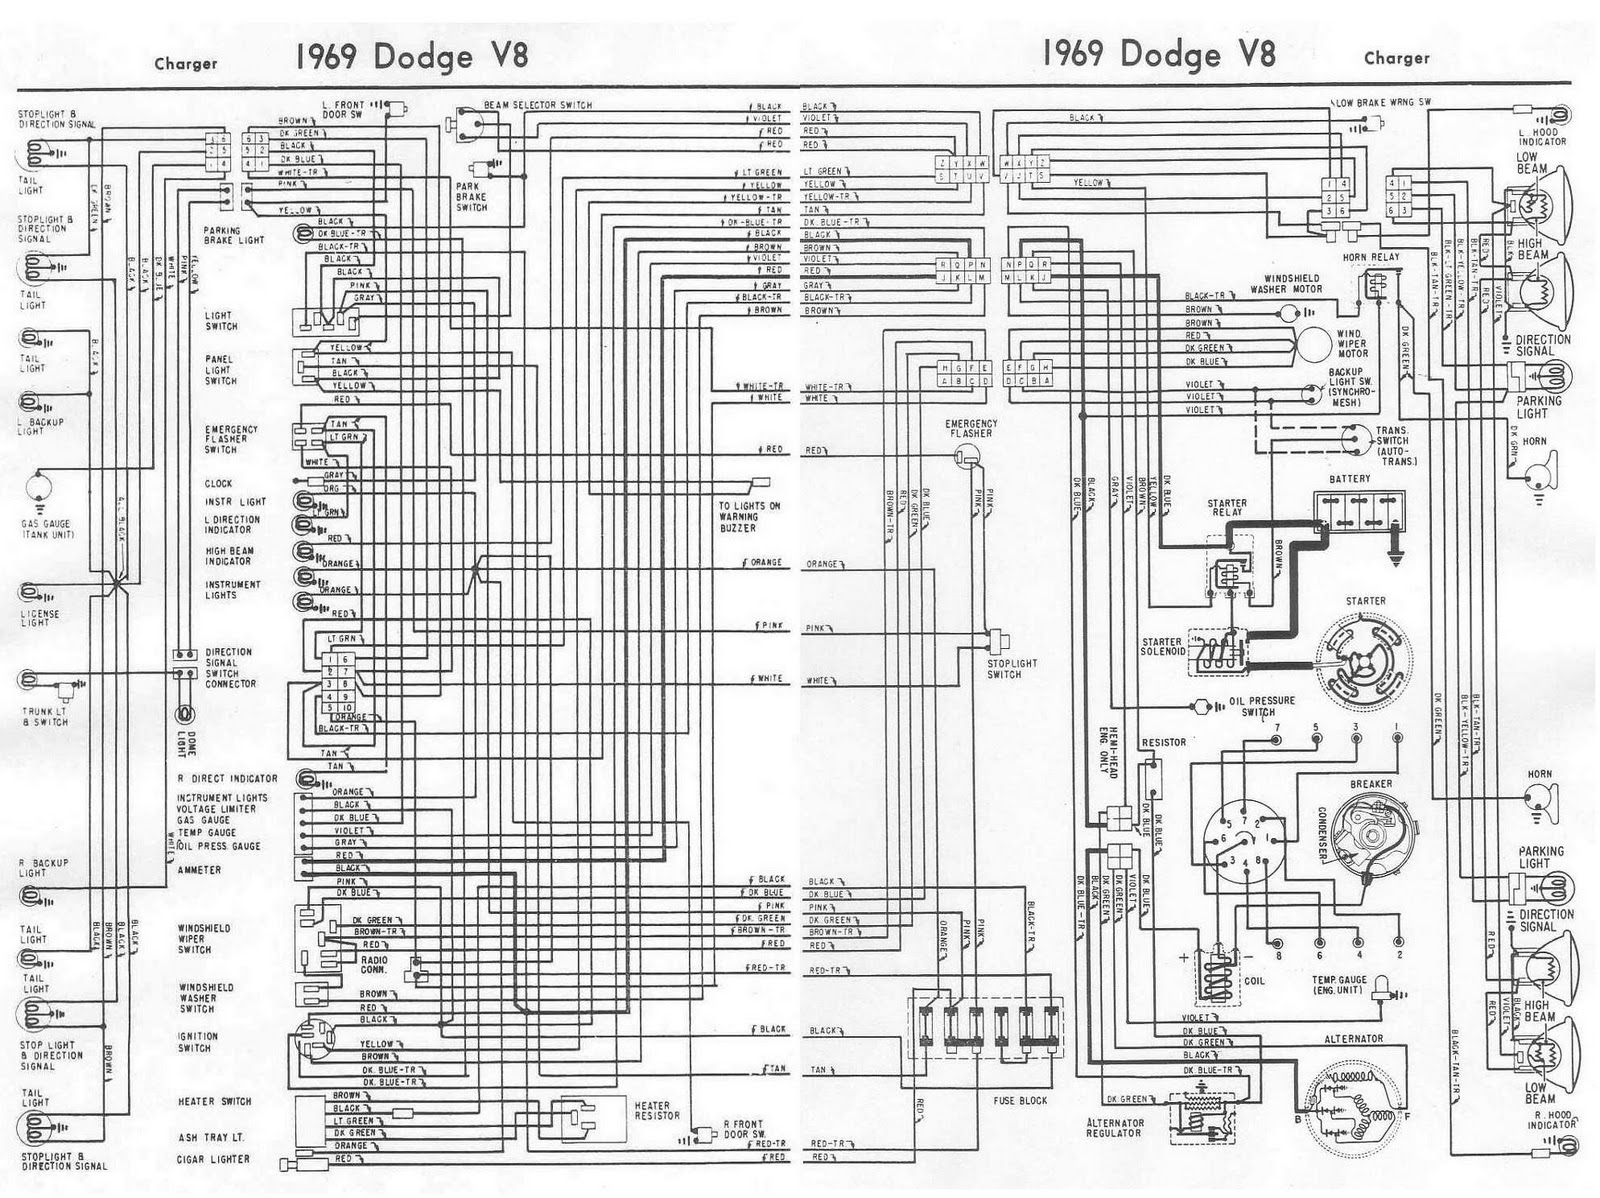 1969+Dodge+Charger+V8+Complete+Wiring+Diagram 2012 mustang wiring diagram 2010 flex wiring diagram \u2022 wiring 1969 mustang dash wiring diagram at fashall.co